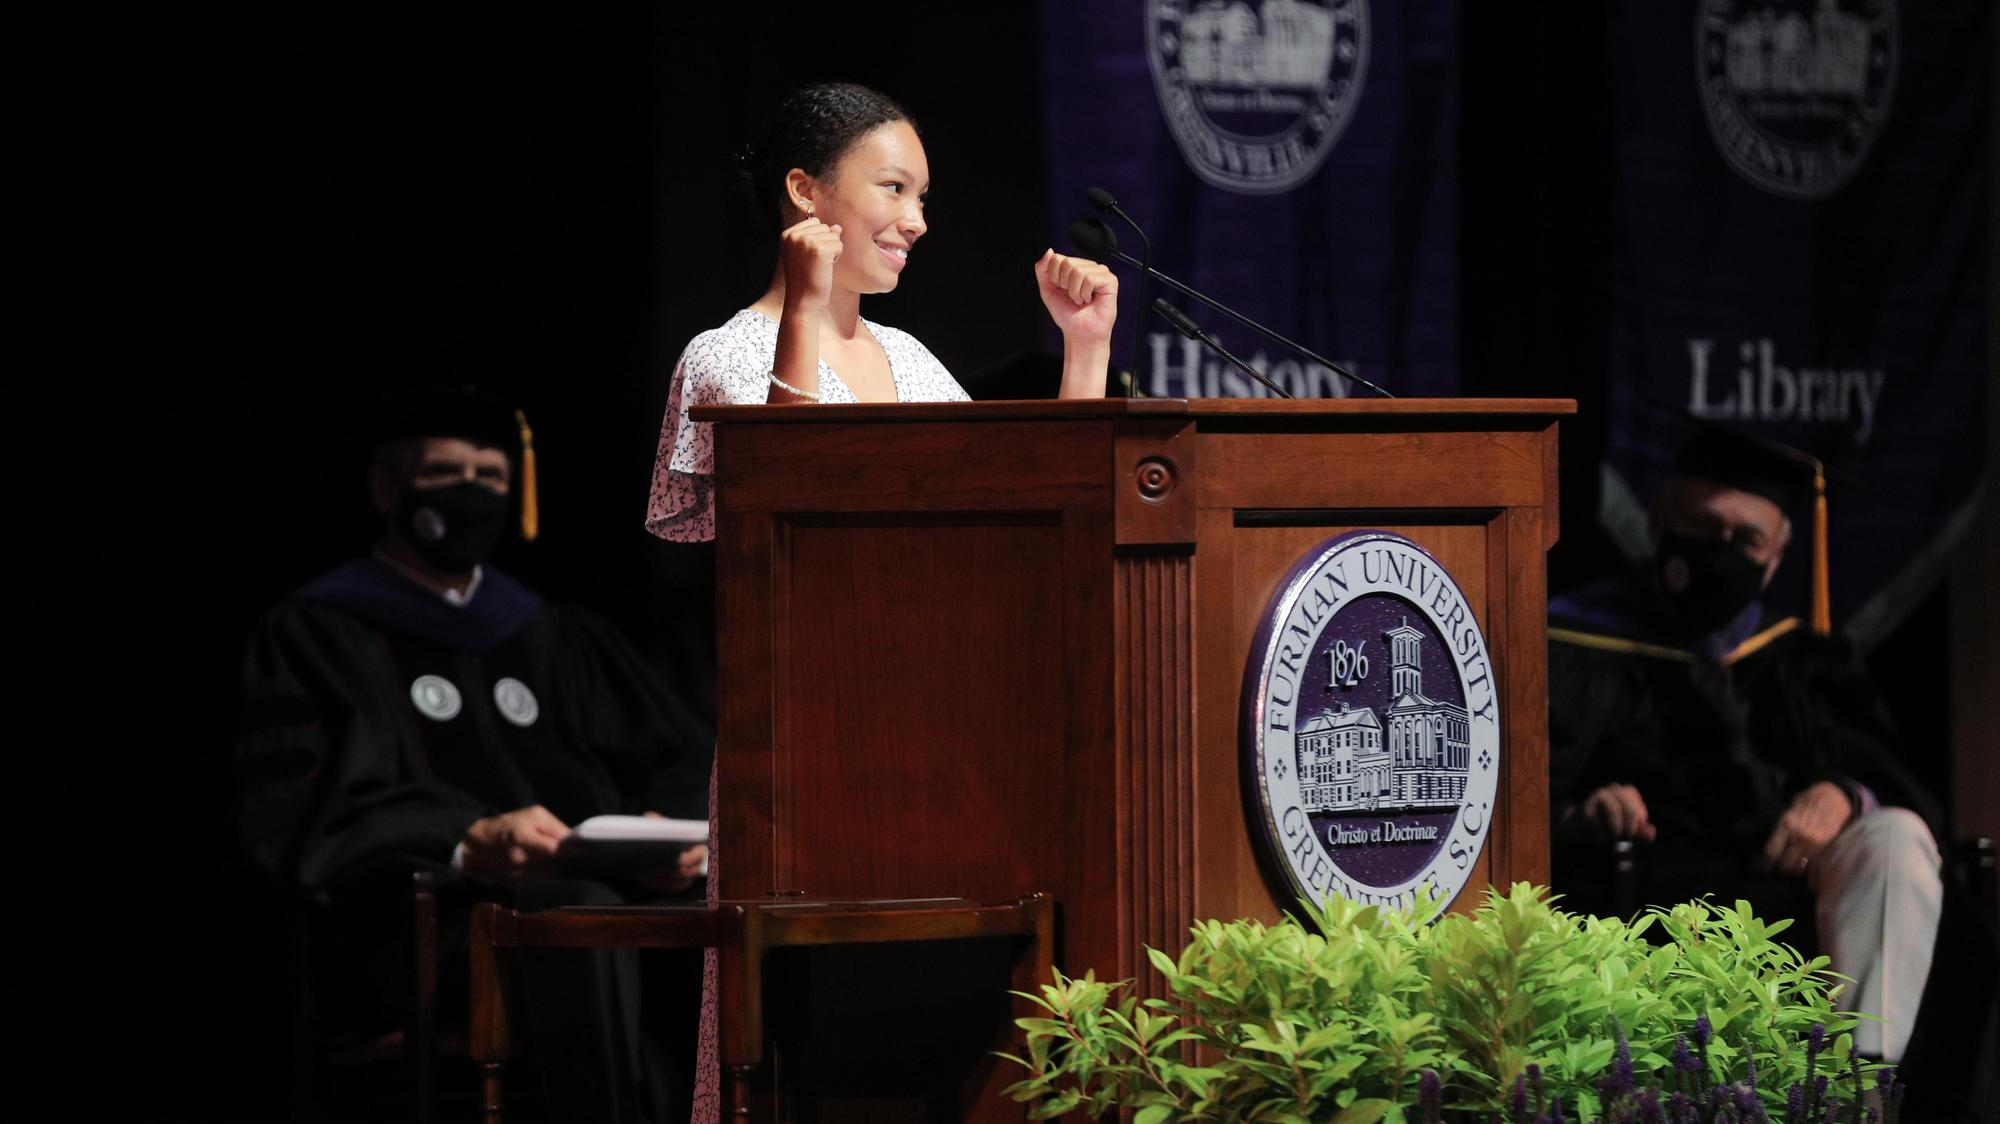 Student Government Association President Asha Marie Larson-Baldwin '22 greets students during the Fall 2021 Opening Convocation ceremony.